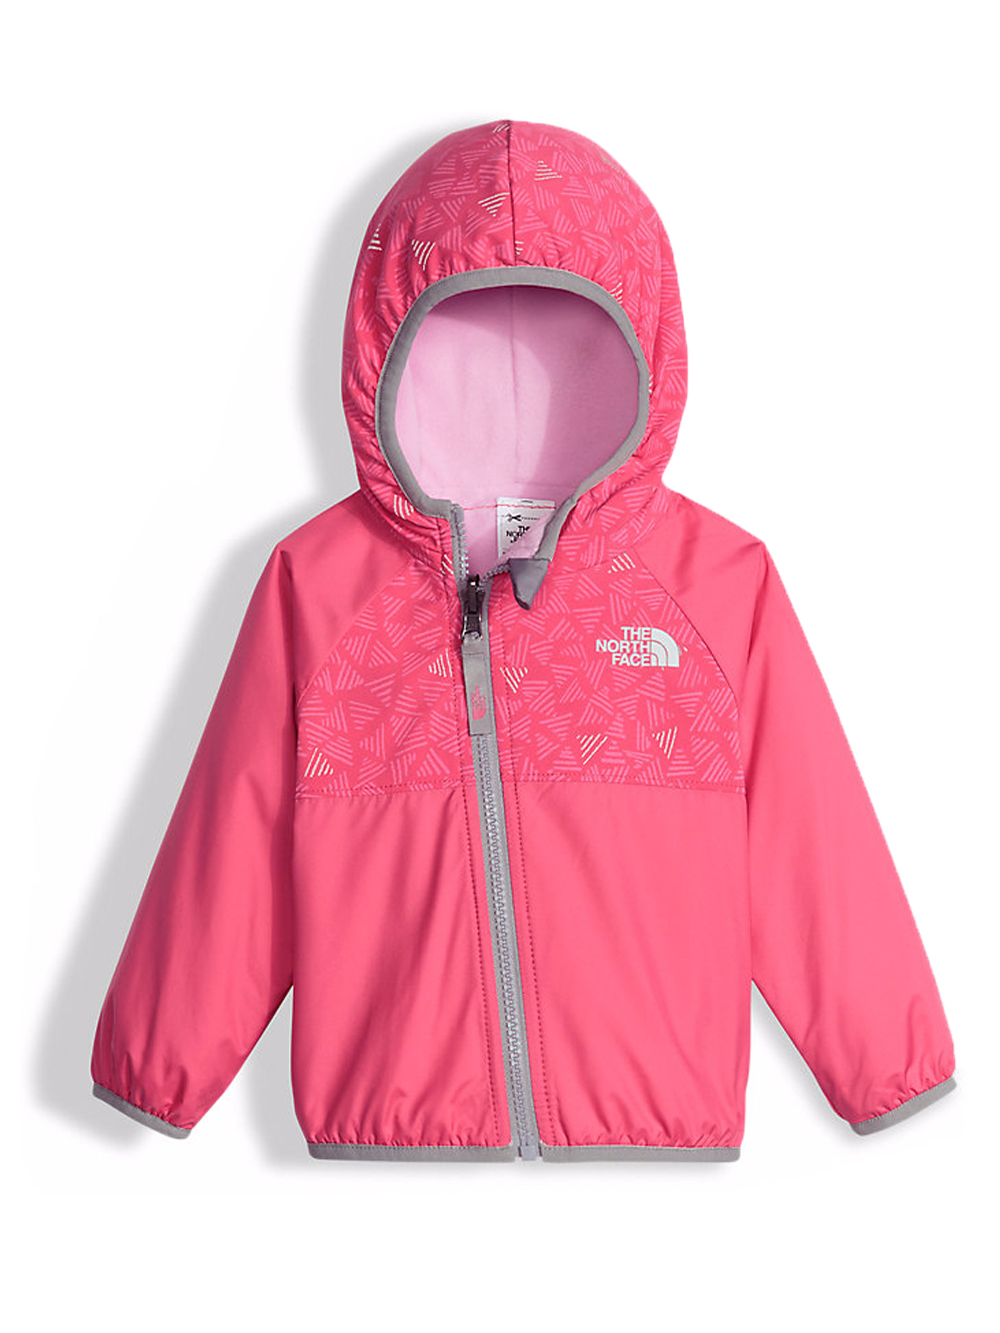 The North Face Baby Girls' Reversible Breezeway Wind Jacket - honeysuckle pink doodle reflective print, 18 - 24 months